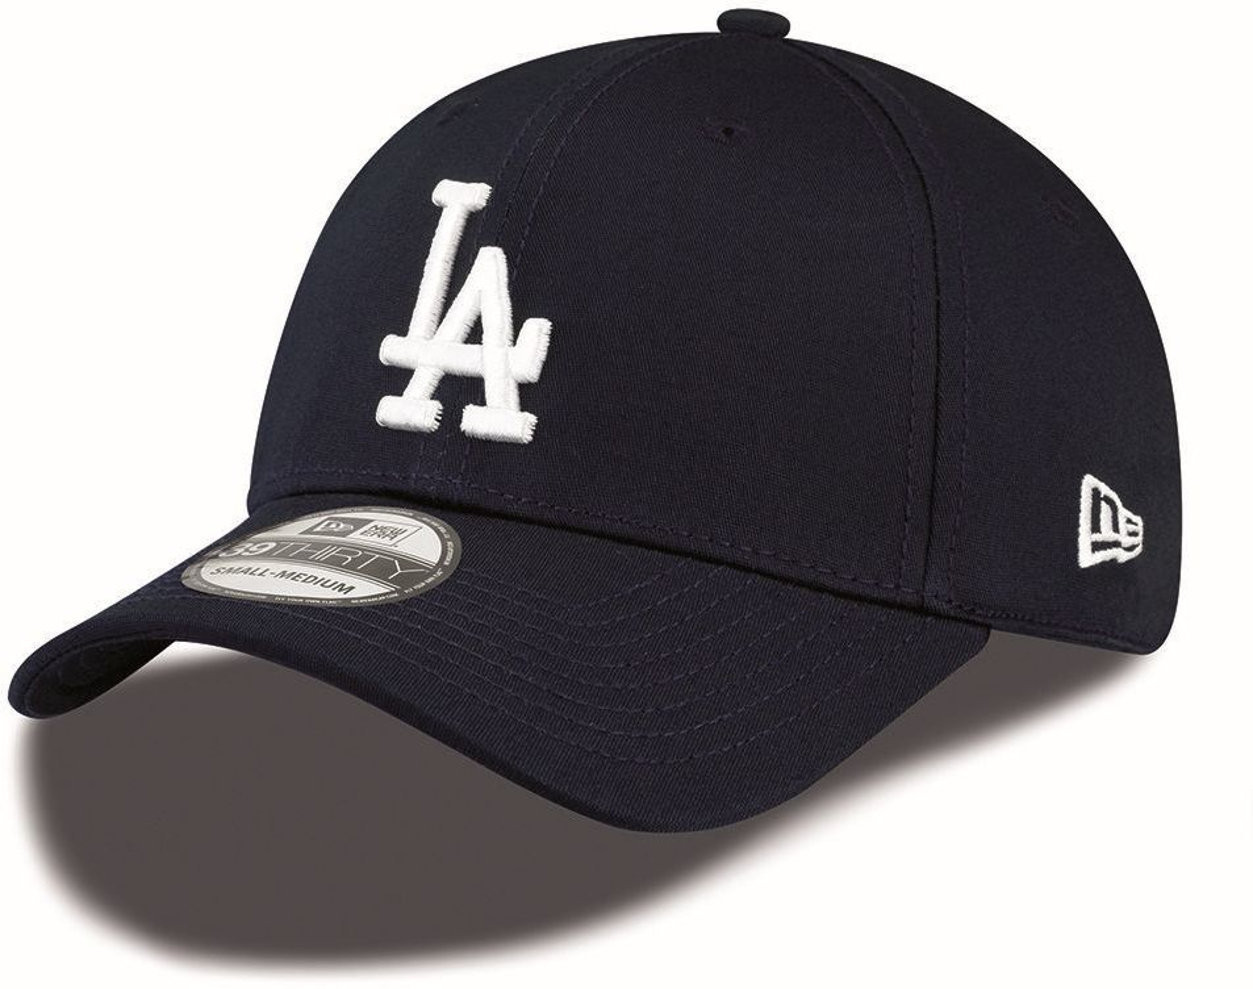 Šiltovka New Era 3930 Los Angeles Dodgers MLB Black White